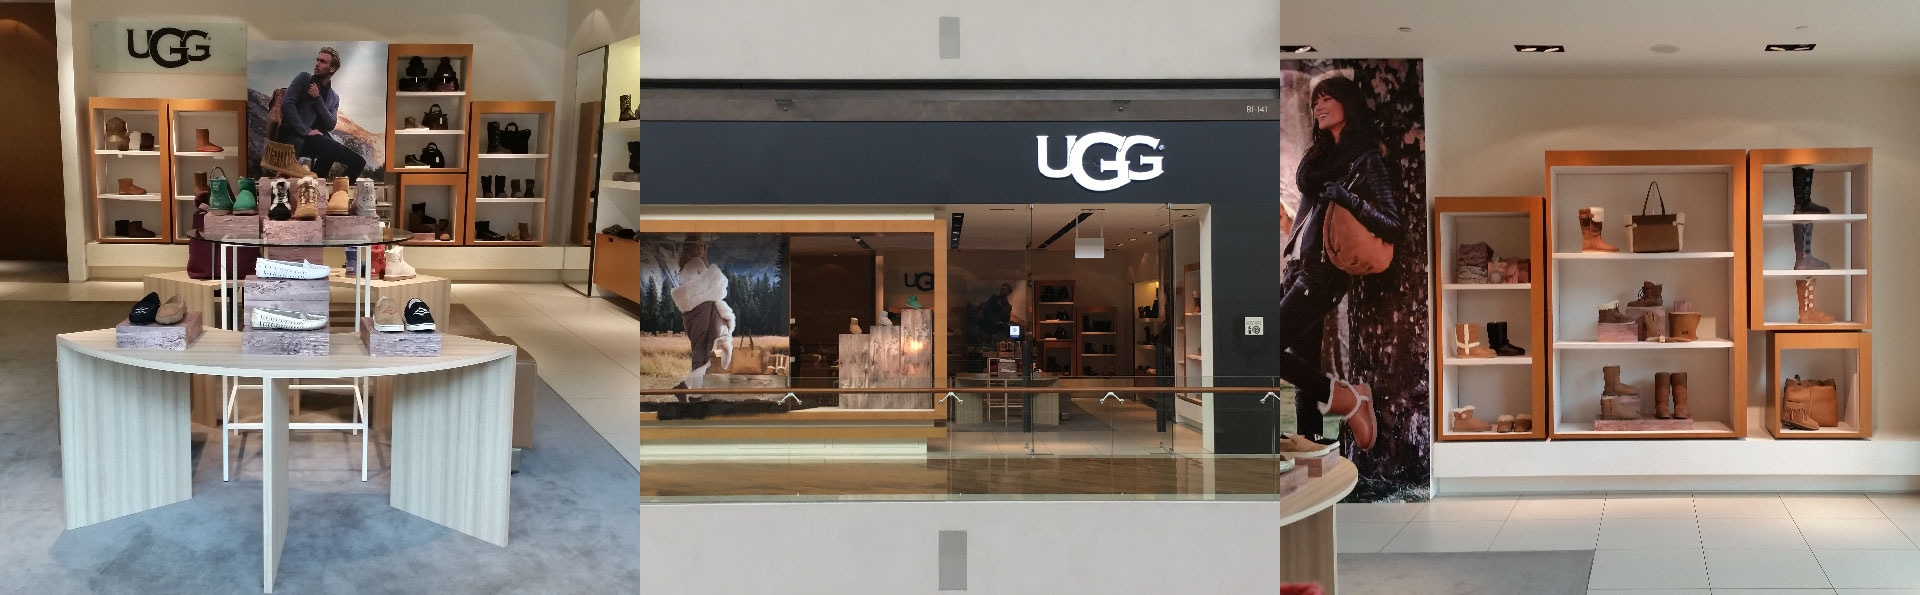 ugg outlets san francisco